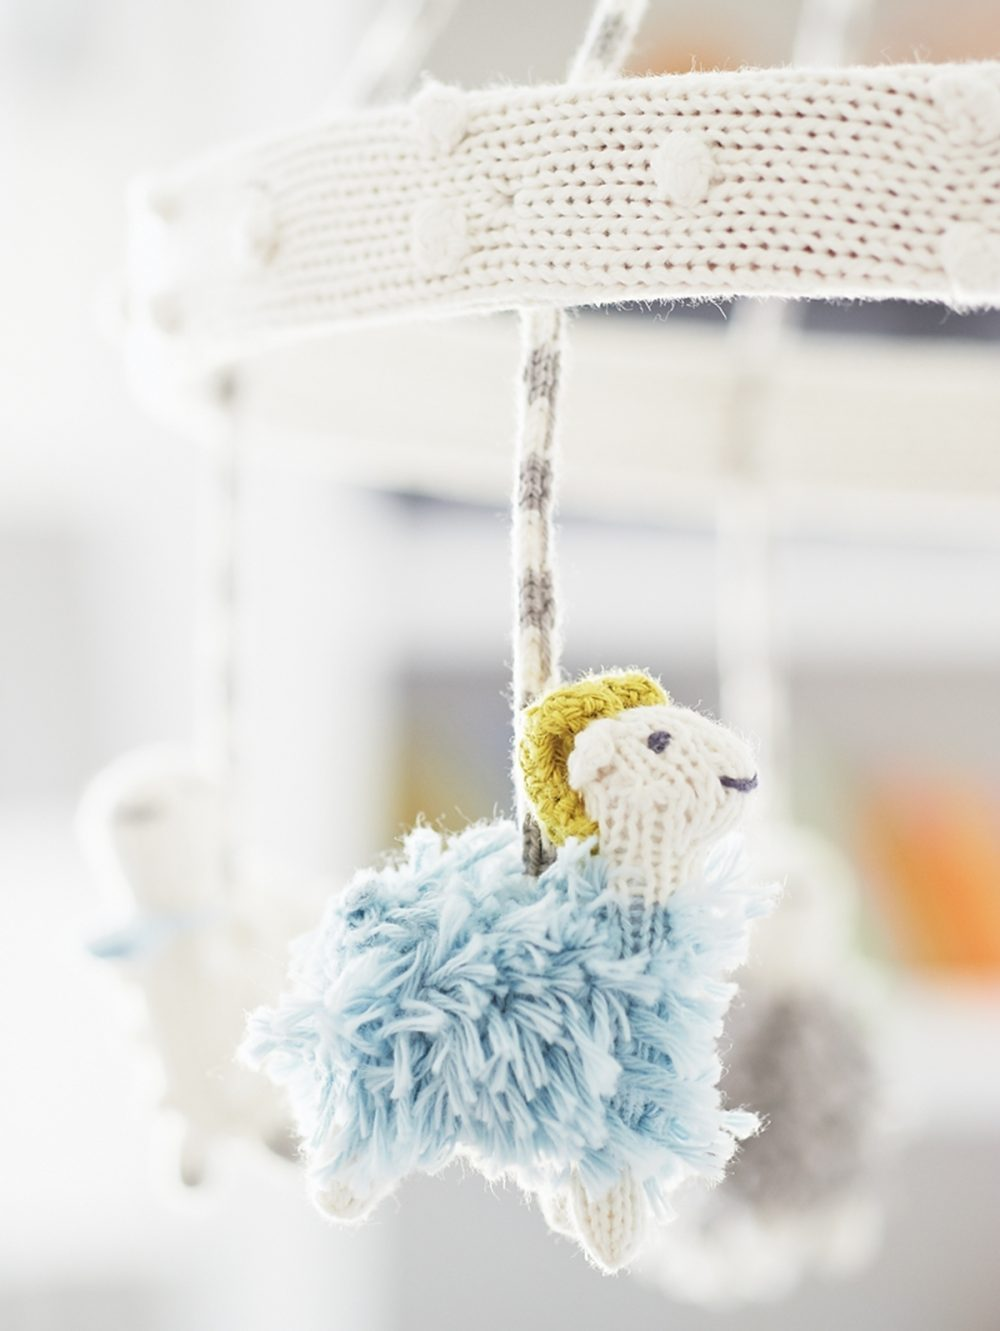 Knitted animals dangle from a baby's mobile.